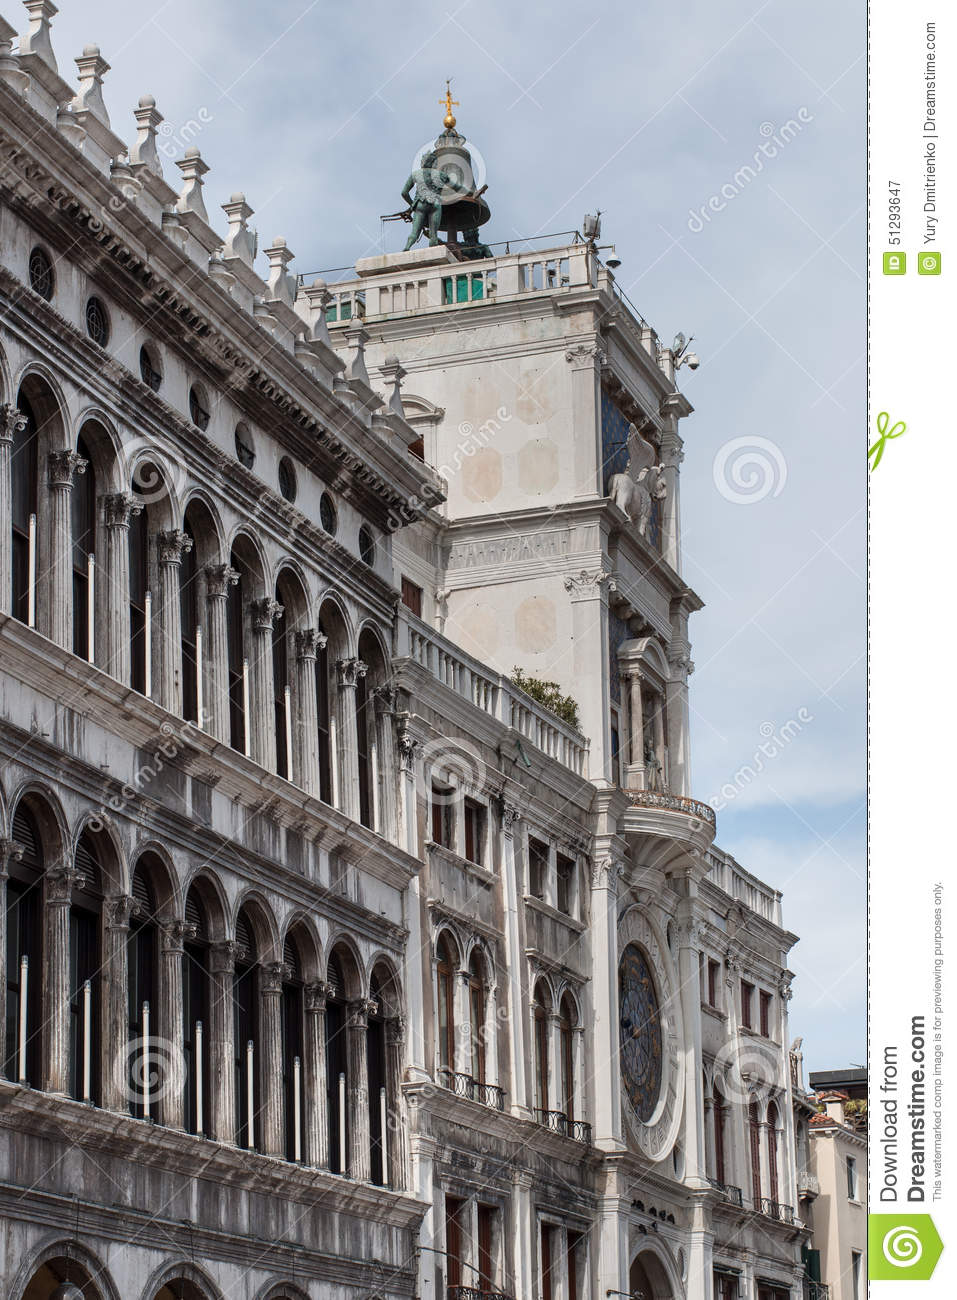 St Marks Clocktower in Venice is an early renaissance building